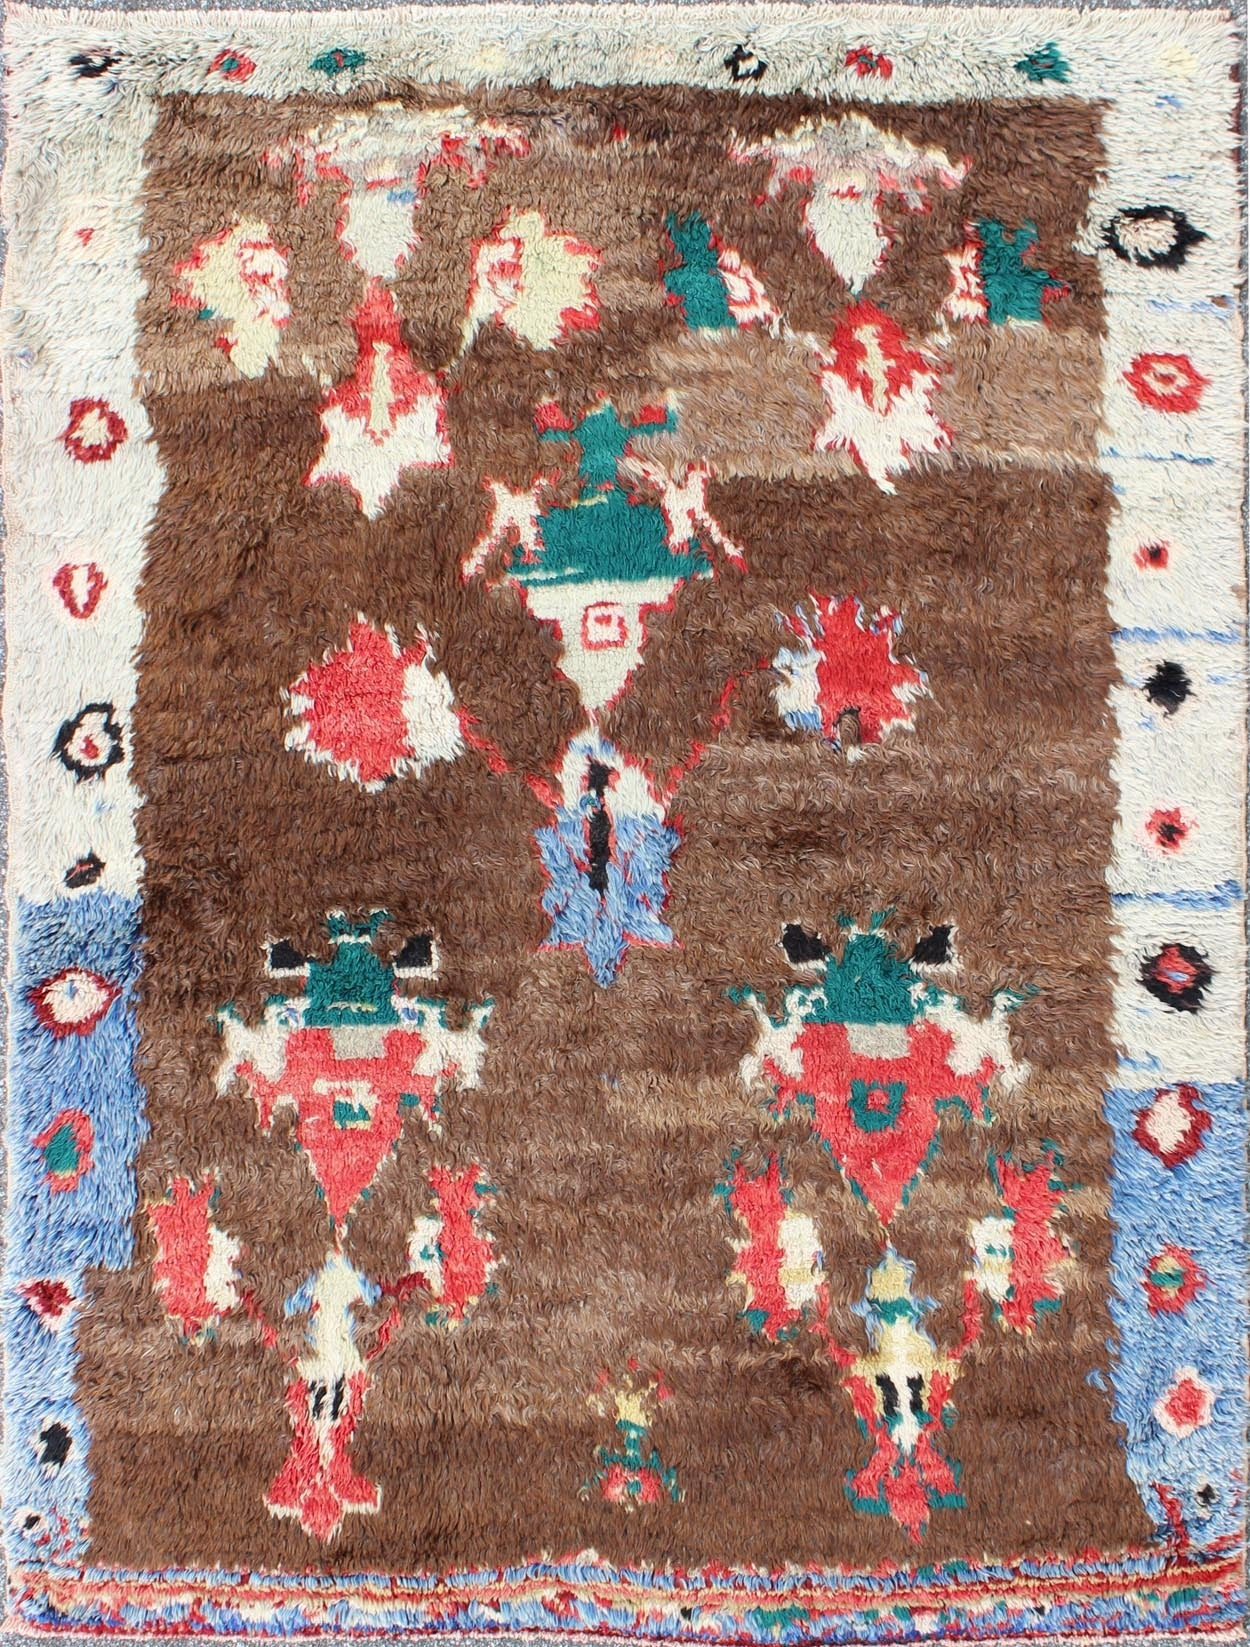 This antique Tulu rug showcases a free-spirited design with stunning colors of blue, brown, green, red and cream. The high pile of this rare rug is angora wool, which adds sheen to this eclectic piece.